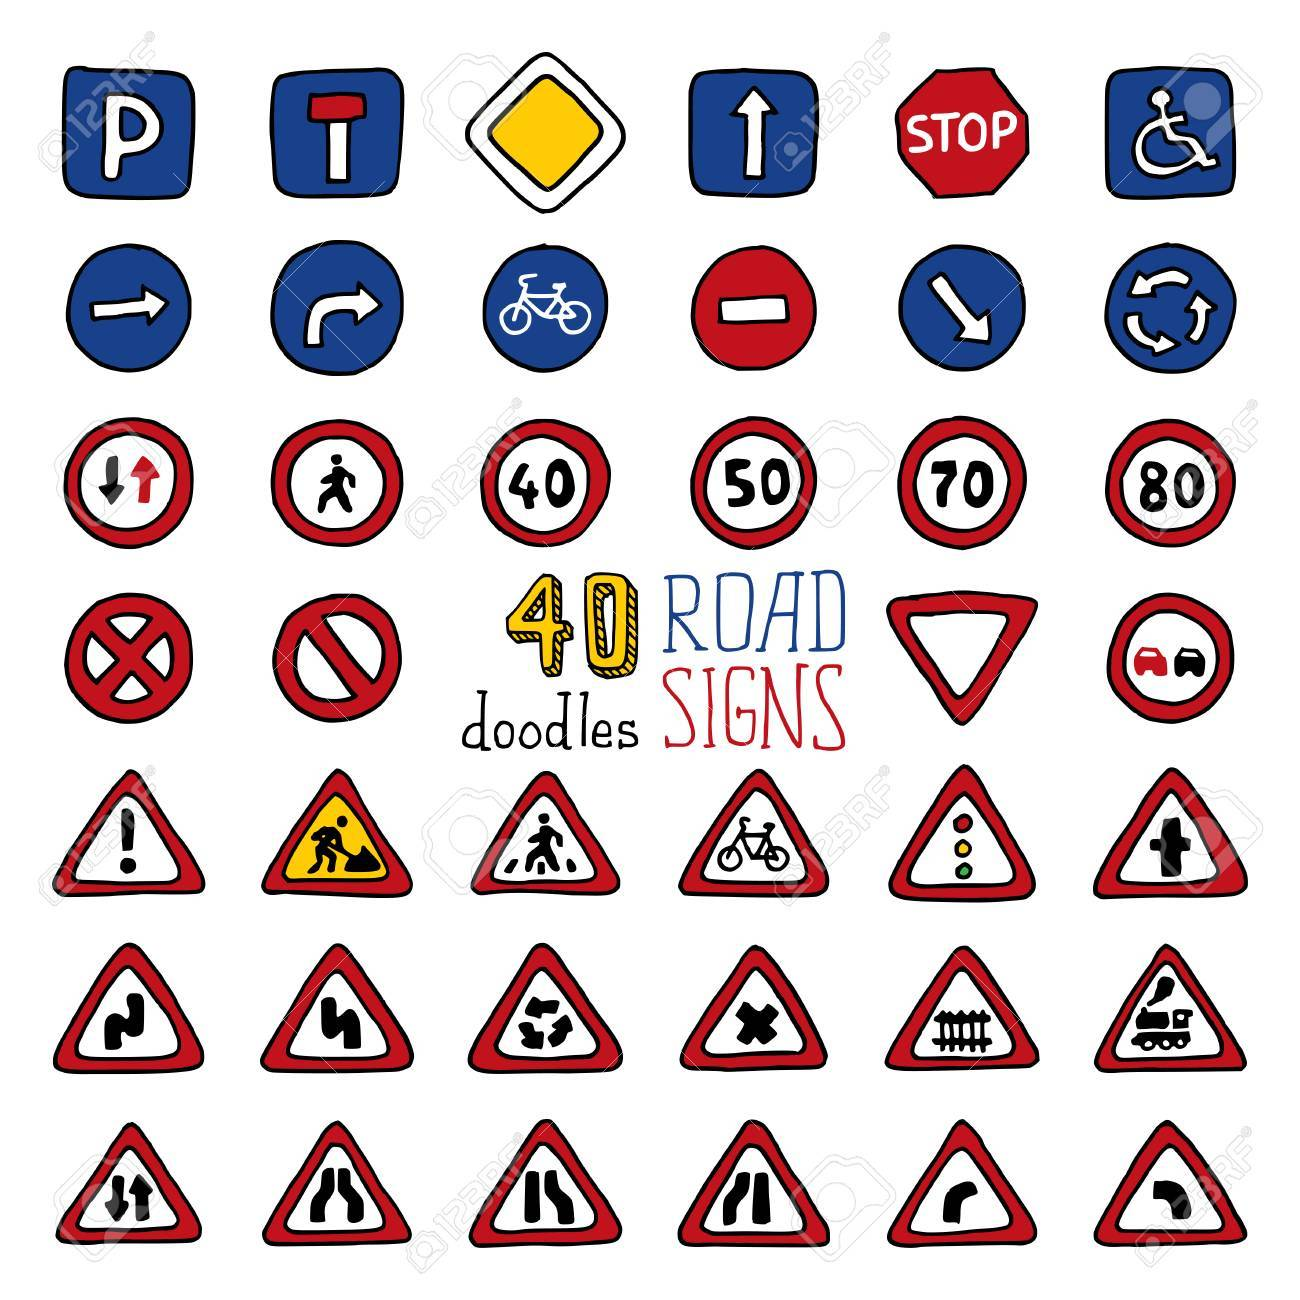 Vector set of doodles road signs. Handdrawn design elements isolated on white background. - 41668266